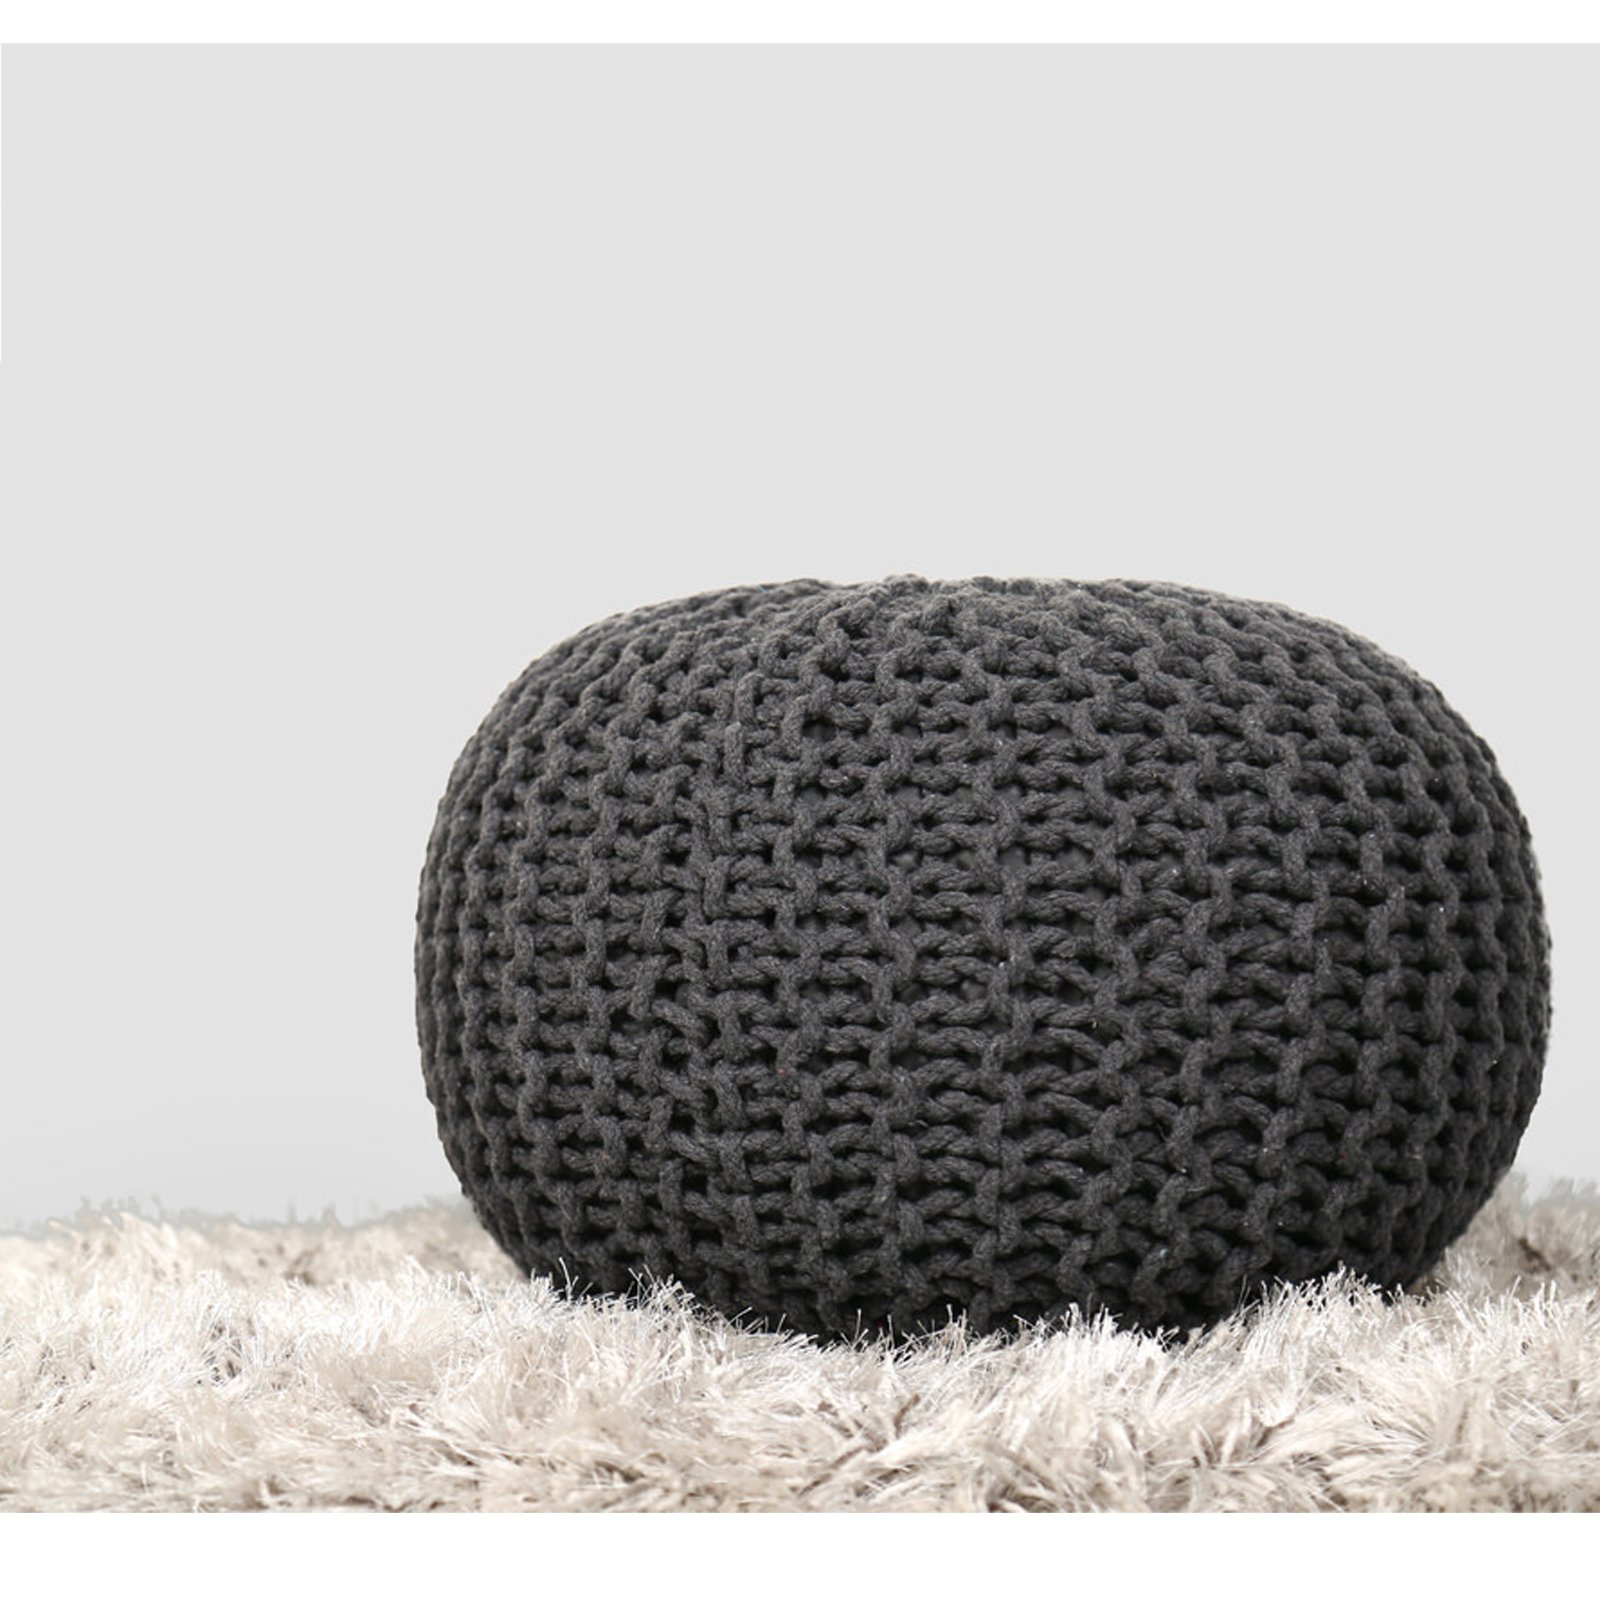 RAJRANG Pouf Hand Knit Pure Cotton Stuffed Braid Cord Stitched Round Foot Home Decorative Perfect Patio Seating, 19 x 13, Charcoal Grey